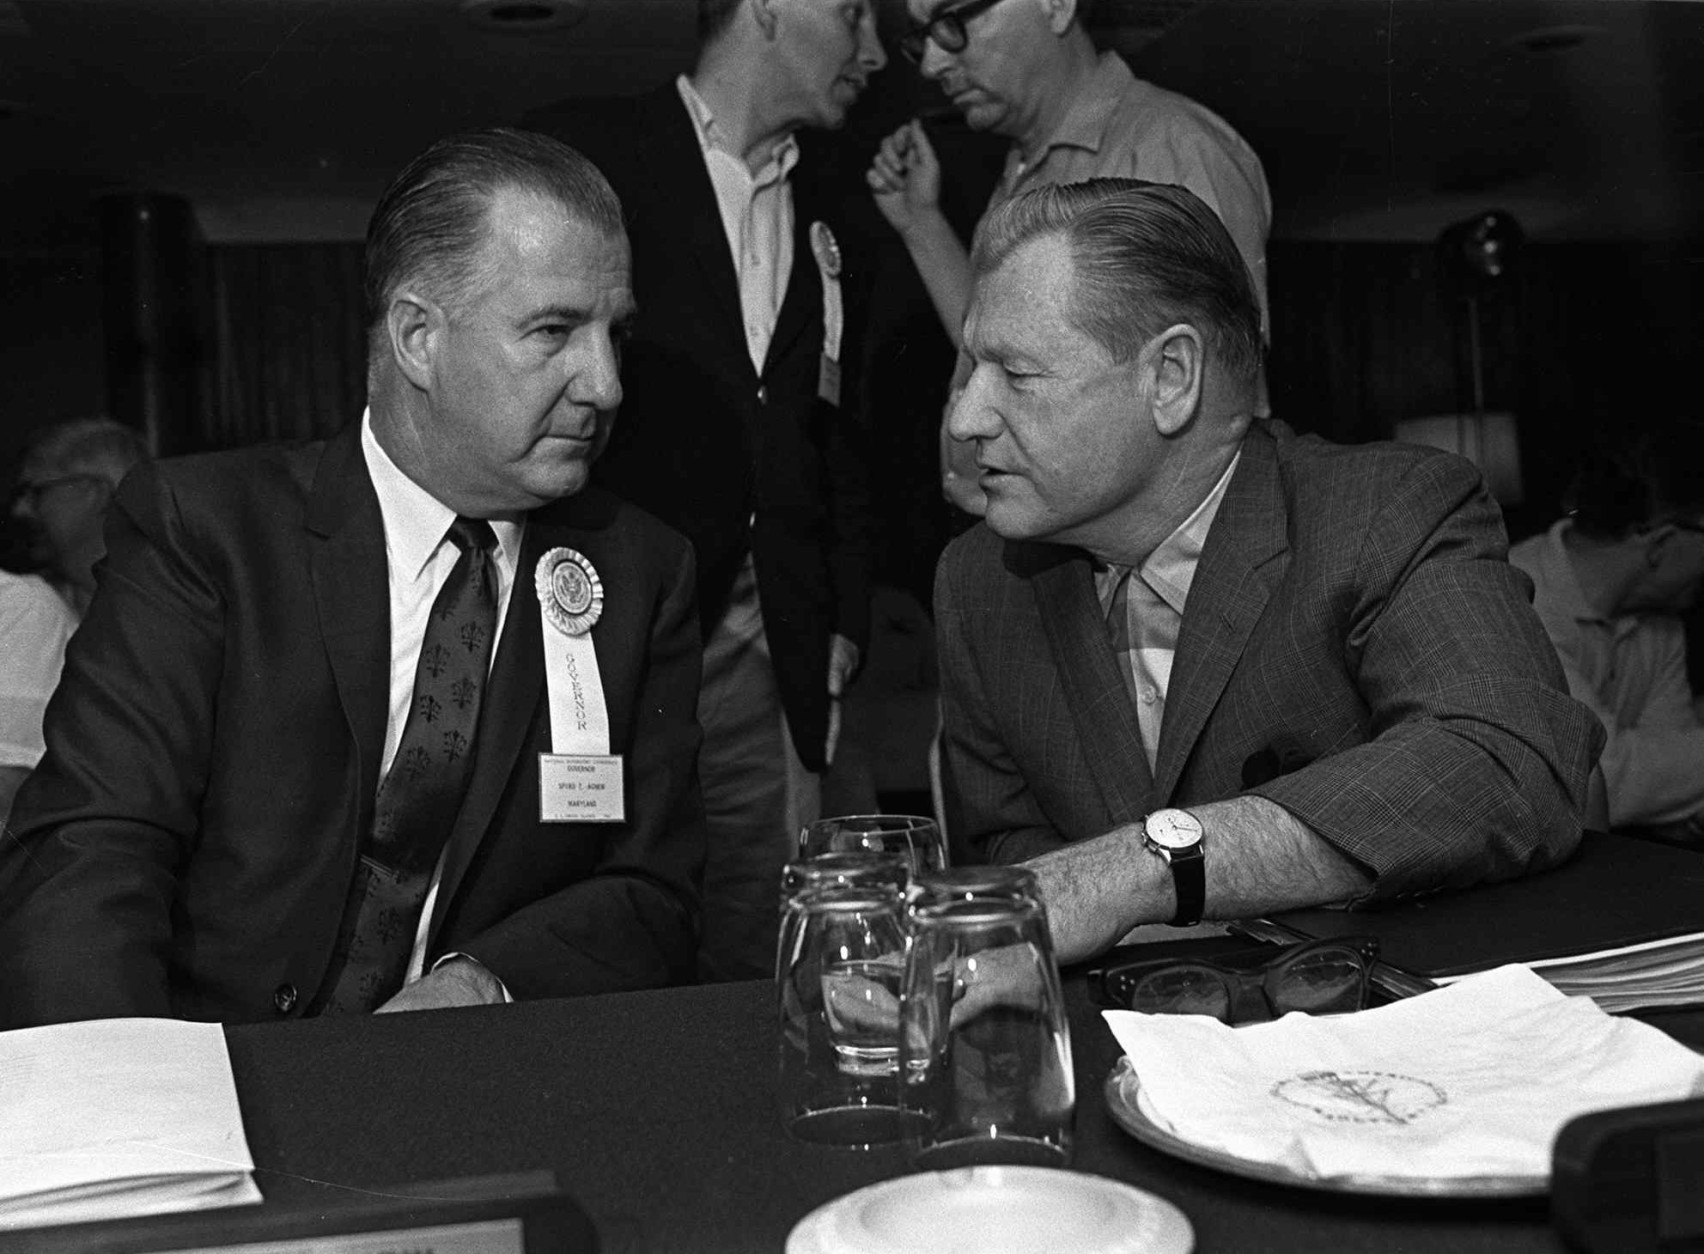 FILE--Former Maryland Governor and Vice President Spiro T. agnew, left, and Nelson A. Rockefeller chat between sessions abaord the liner Independence in this Oct. 19, 1967 file photo.  Agnew, an outspoken conservative who loved bashing the media before he resigned in disgrace as Richard Nixon's vice president over a tax-evasion scandal in 1973, died Tuesday Sept. 17, 1996. He was 77. (AP Photo/File)